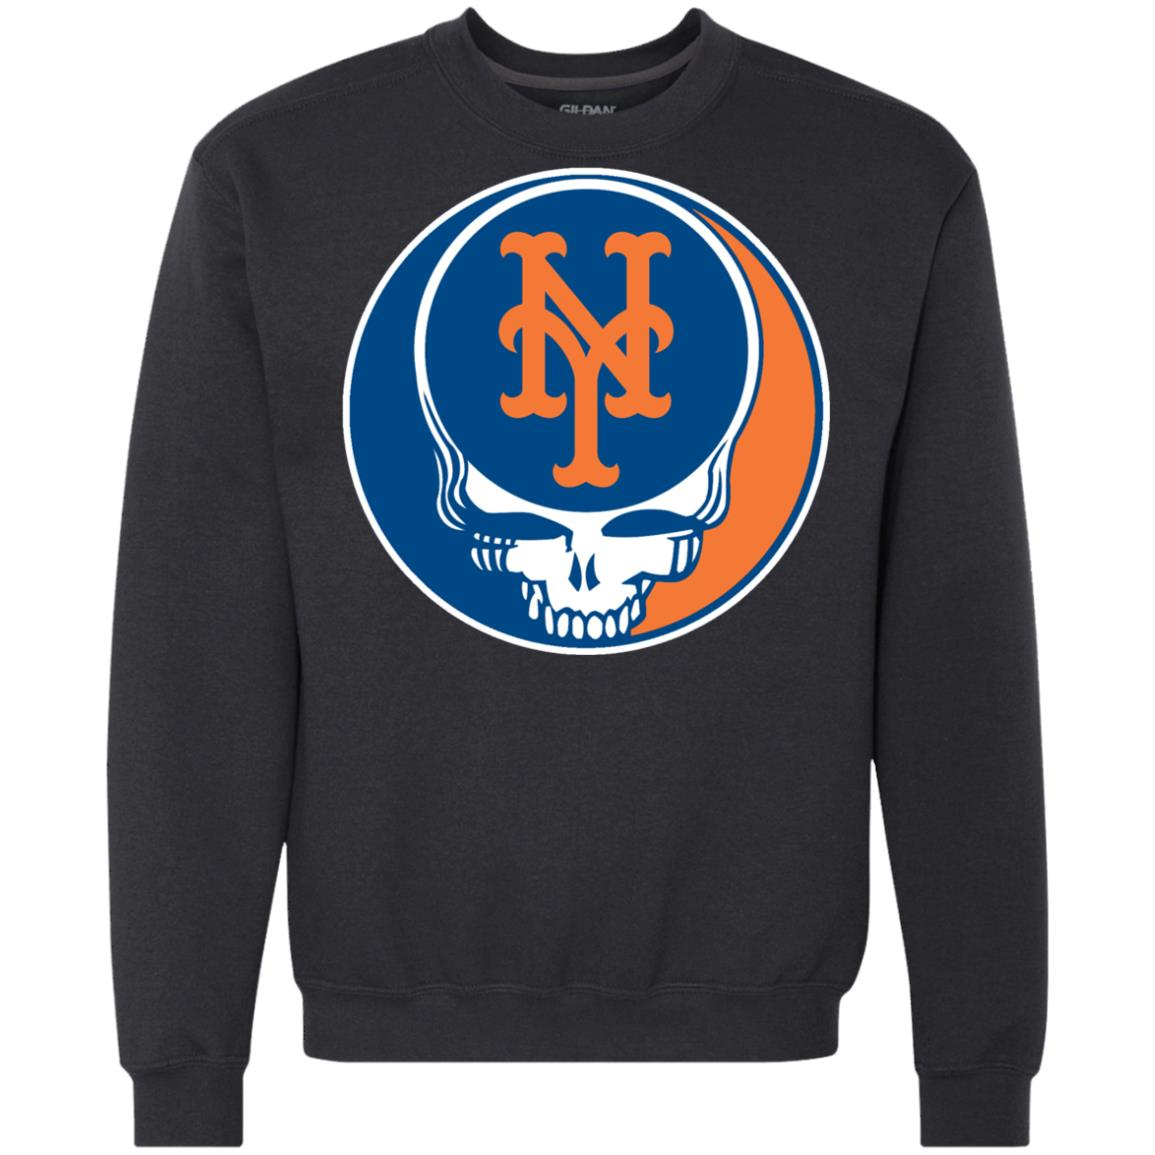 save off 61922 13871 Grateful Dead Steal Your Face New York Mets T shirts Hoodies, Sweatshirts